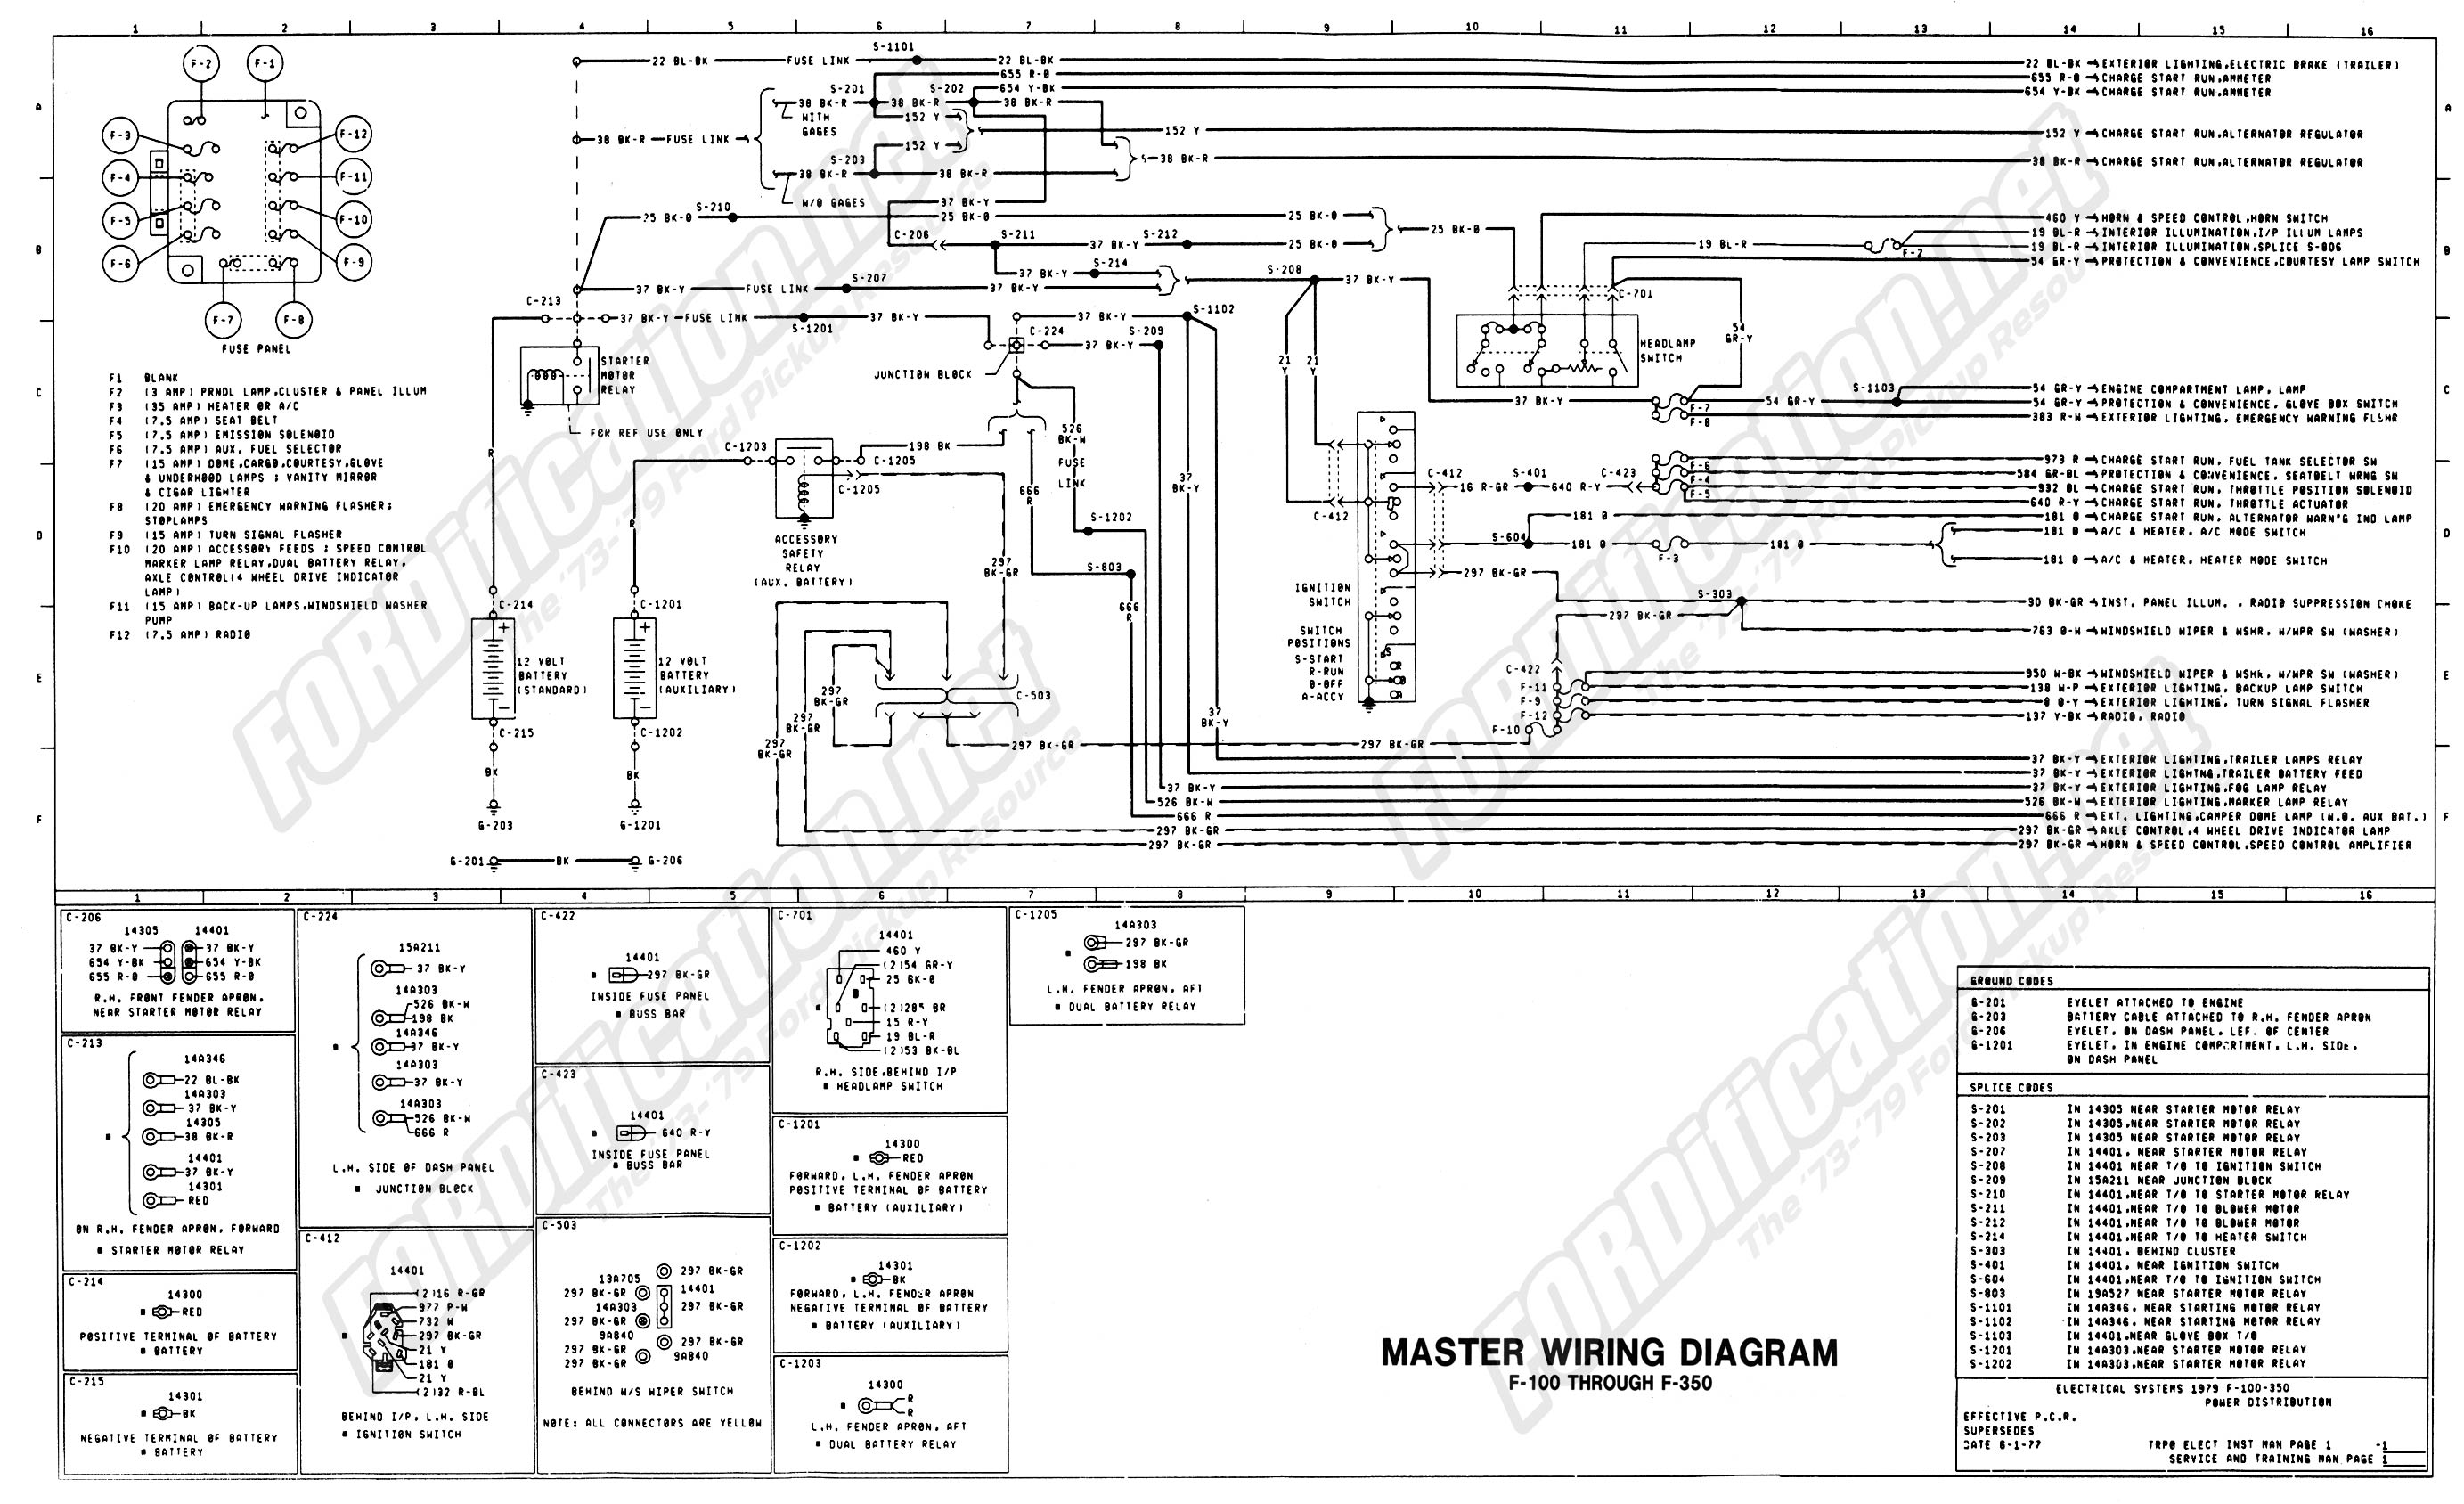 wiring_79master_1of9 1973 1979 ford truck wiring diagrams & schematics fordification net 1979 ford truck fuse box diagram at nearapp.co